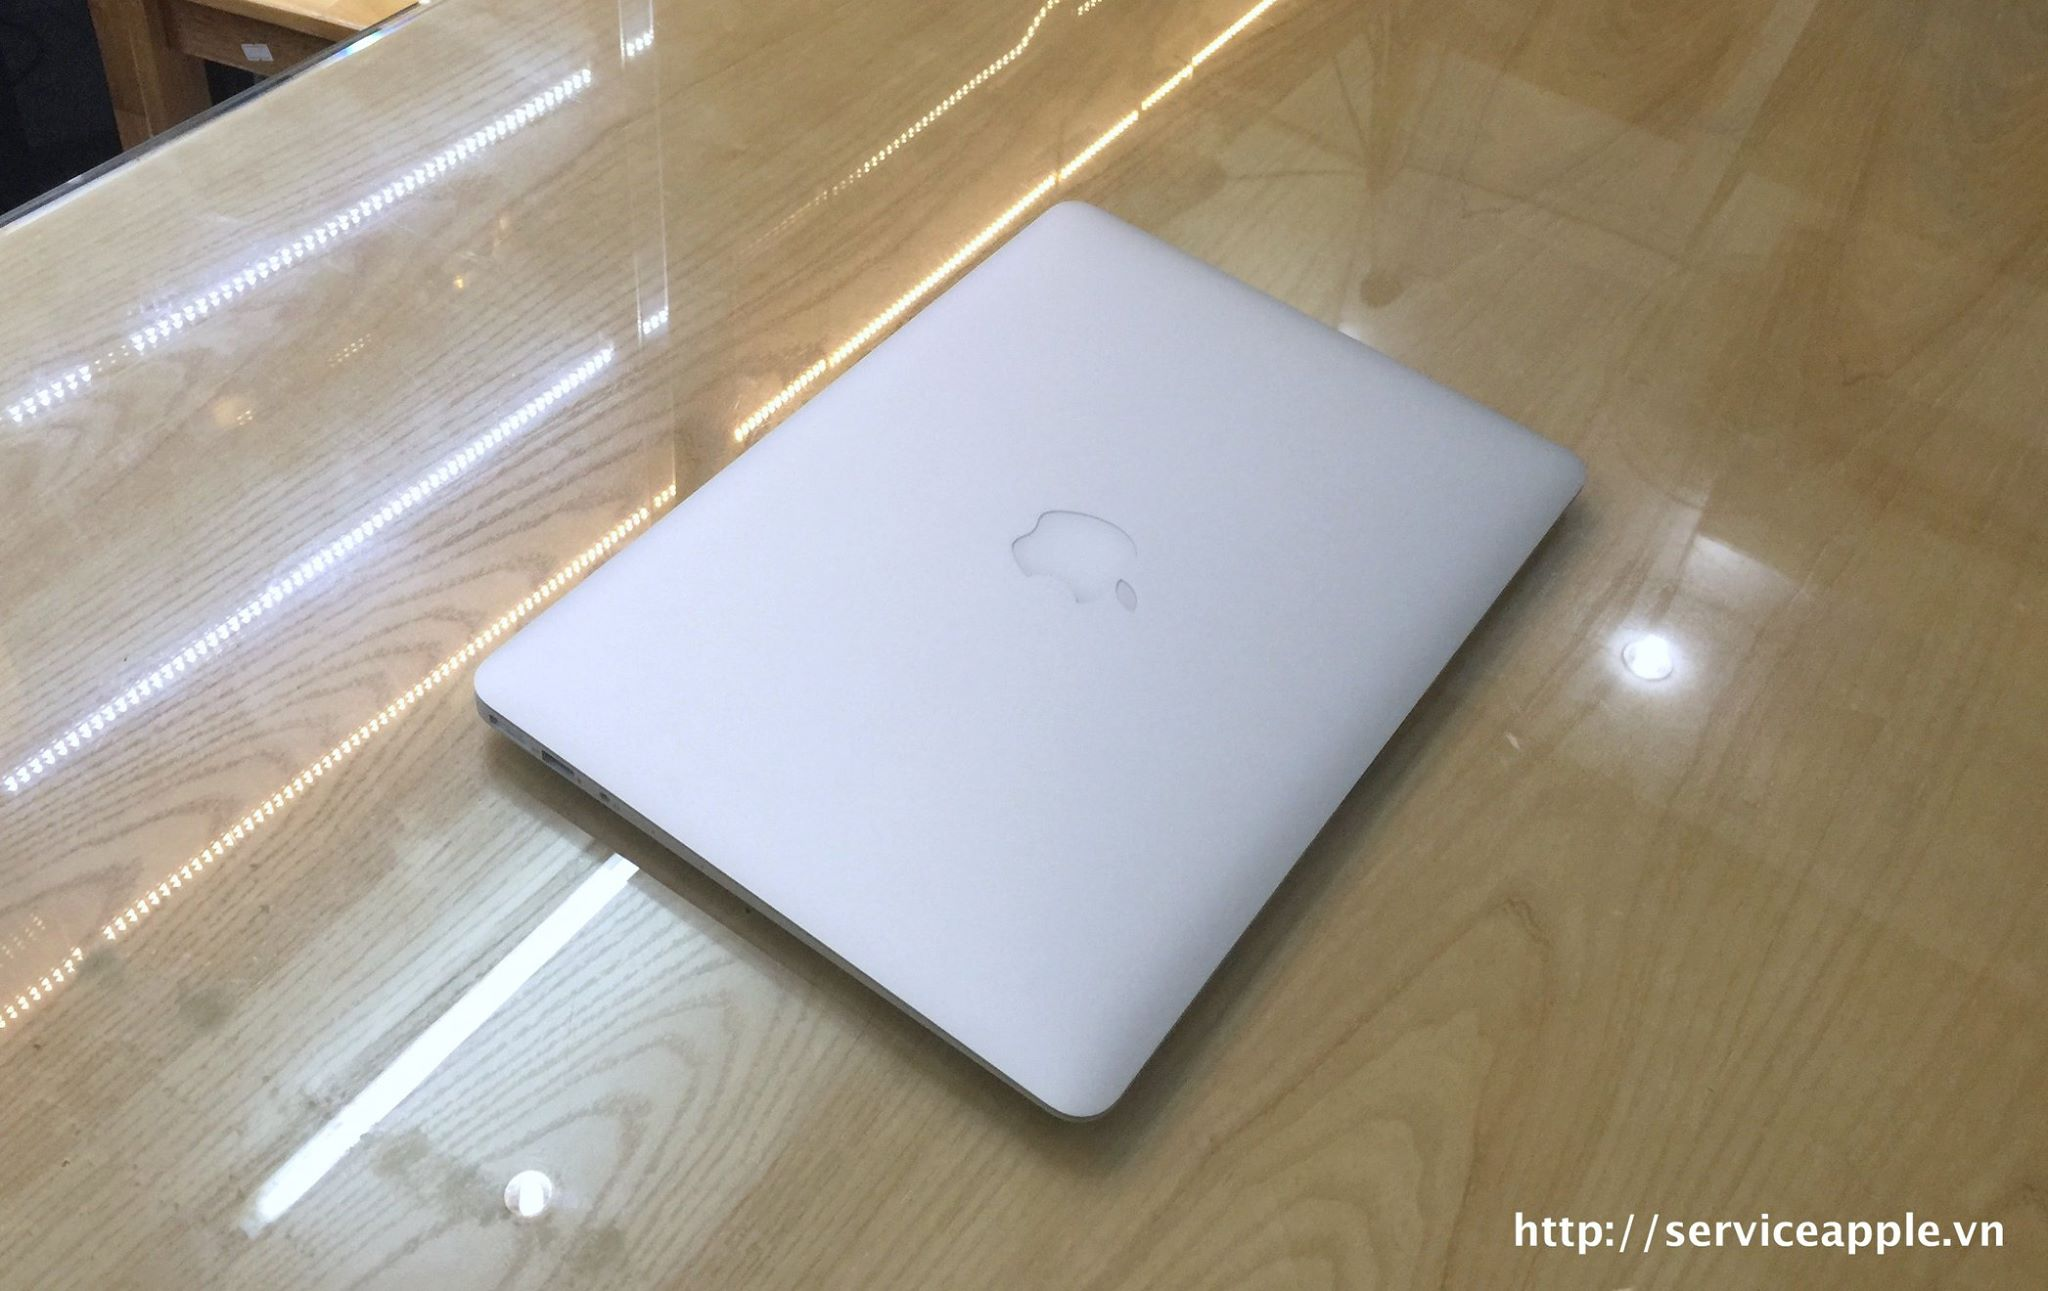 Macbook Air 2015 MJVE2ZP-4.jpg